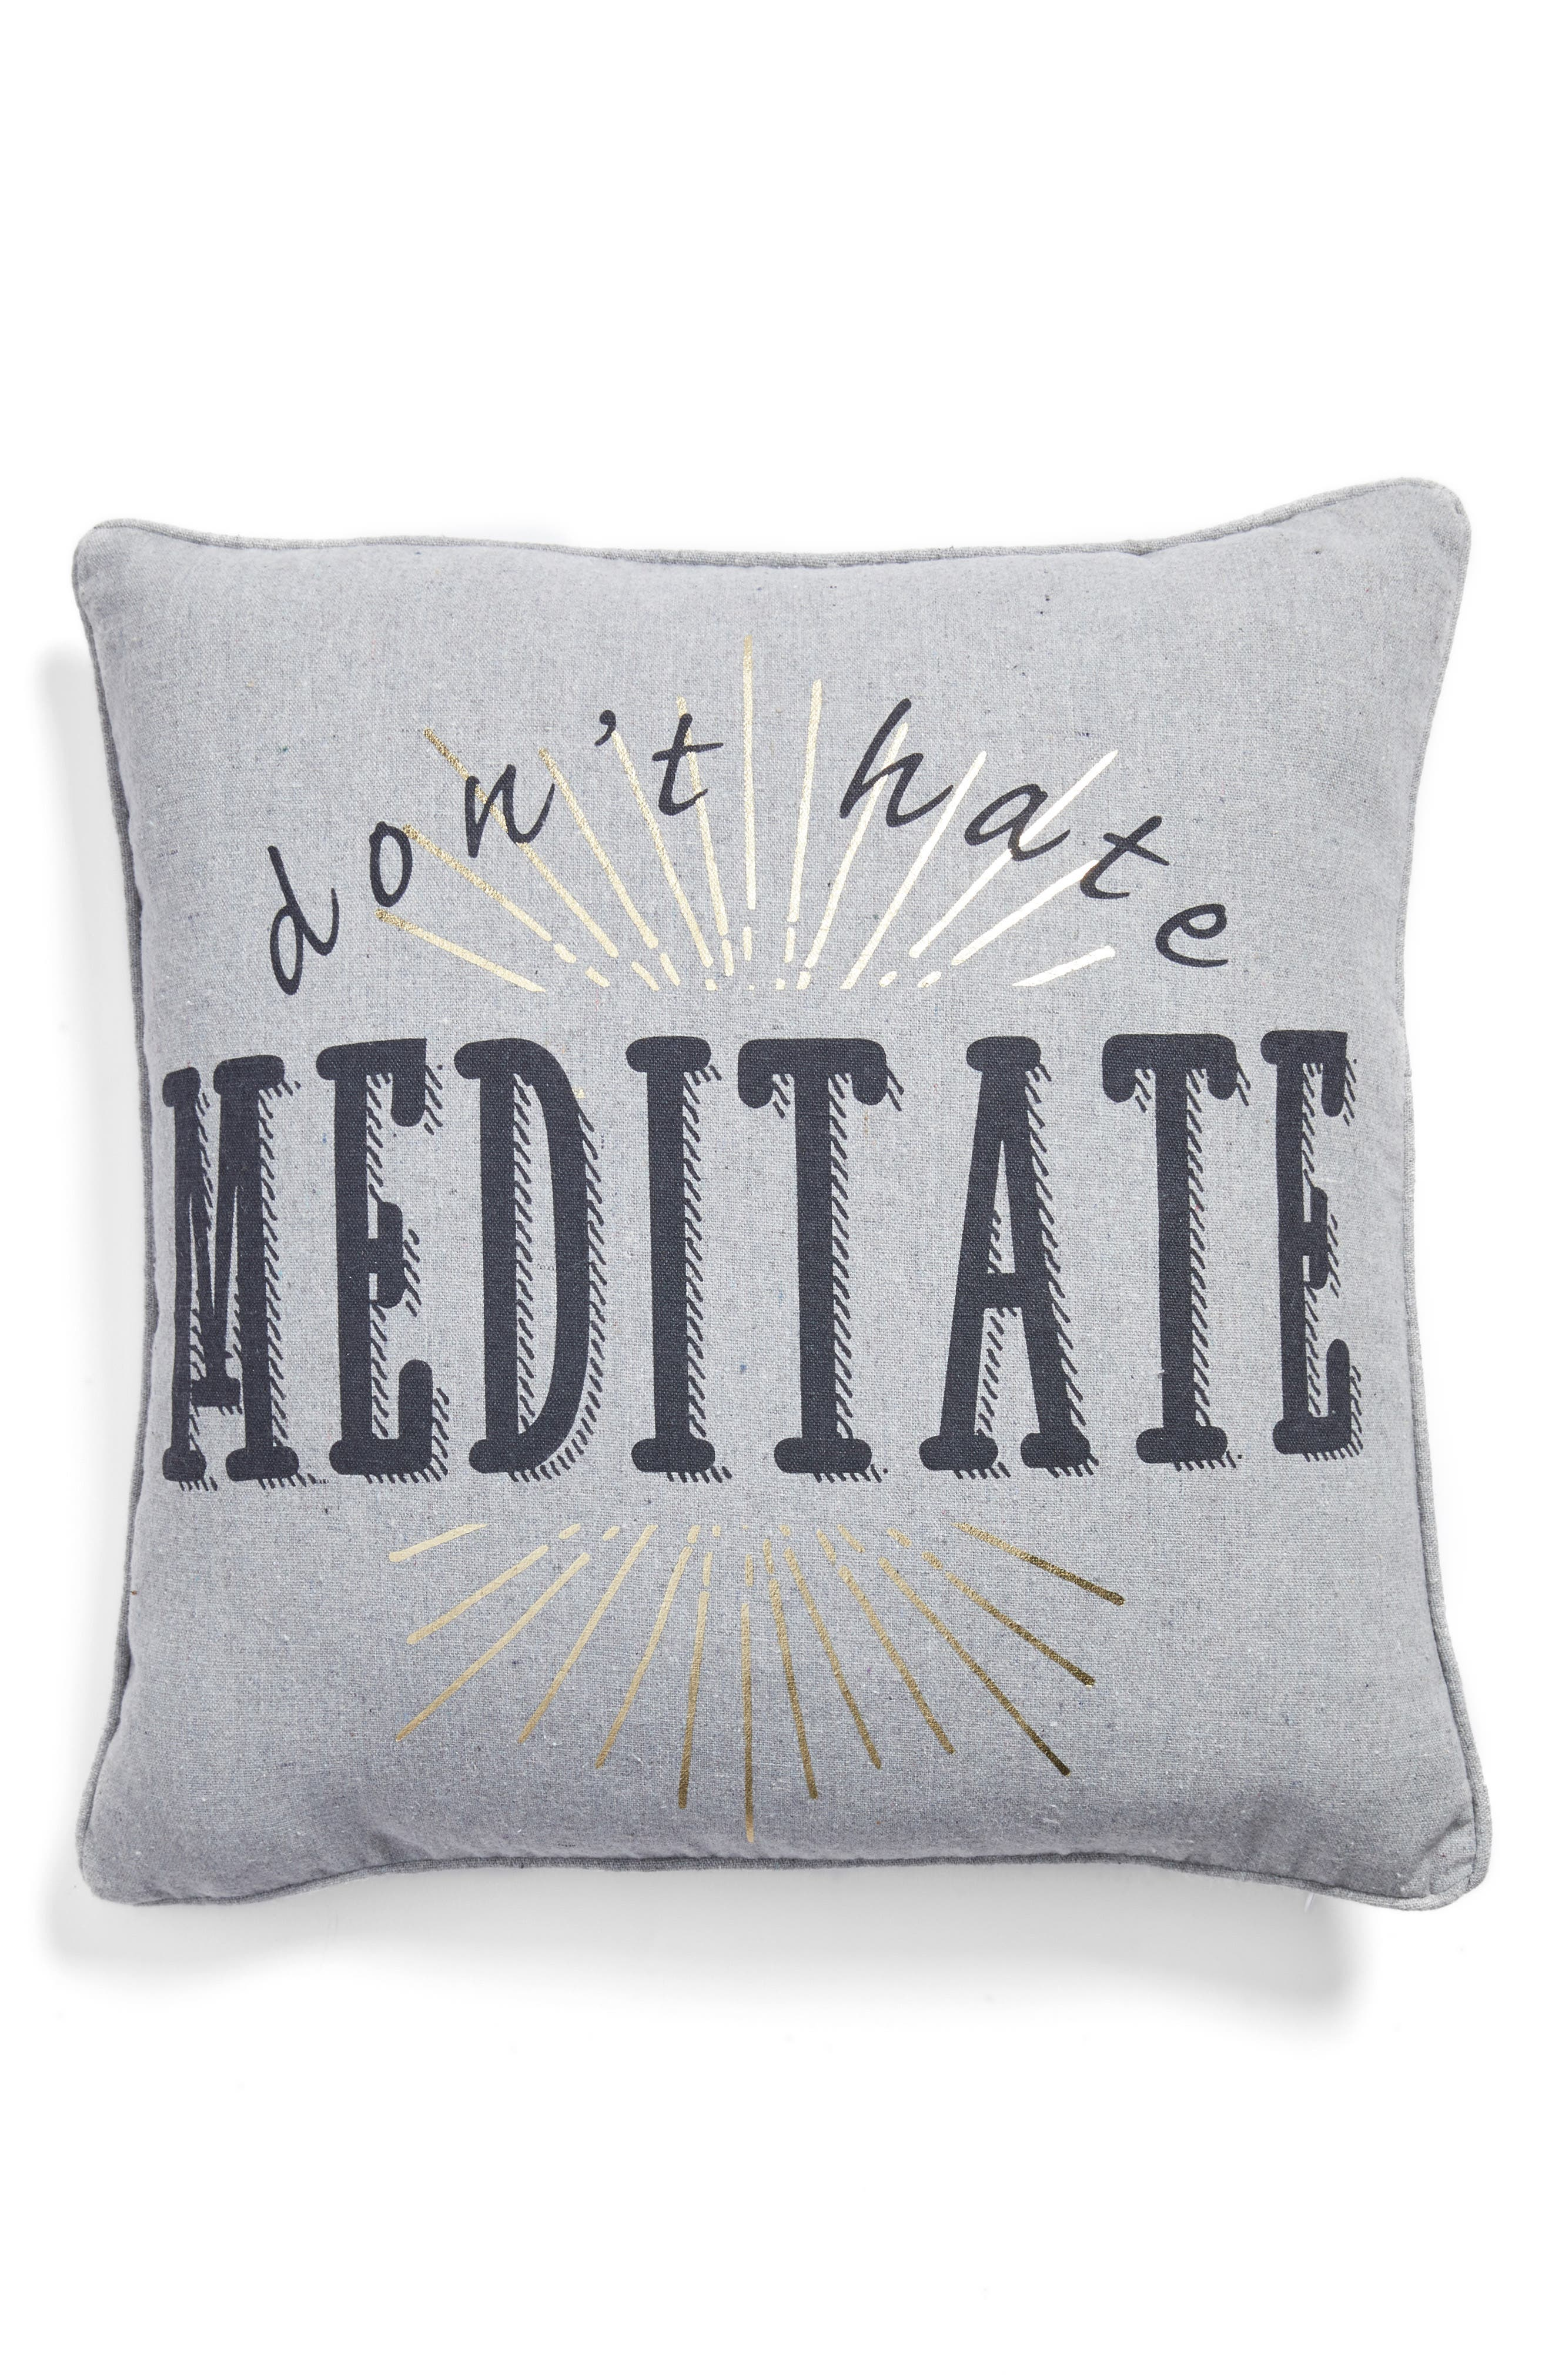 Don't Hate Meditate Pillow,                         Main,                         color, Grey